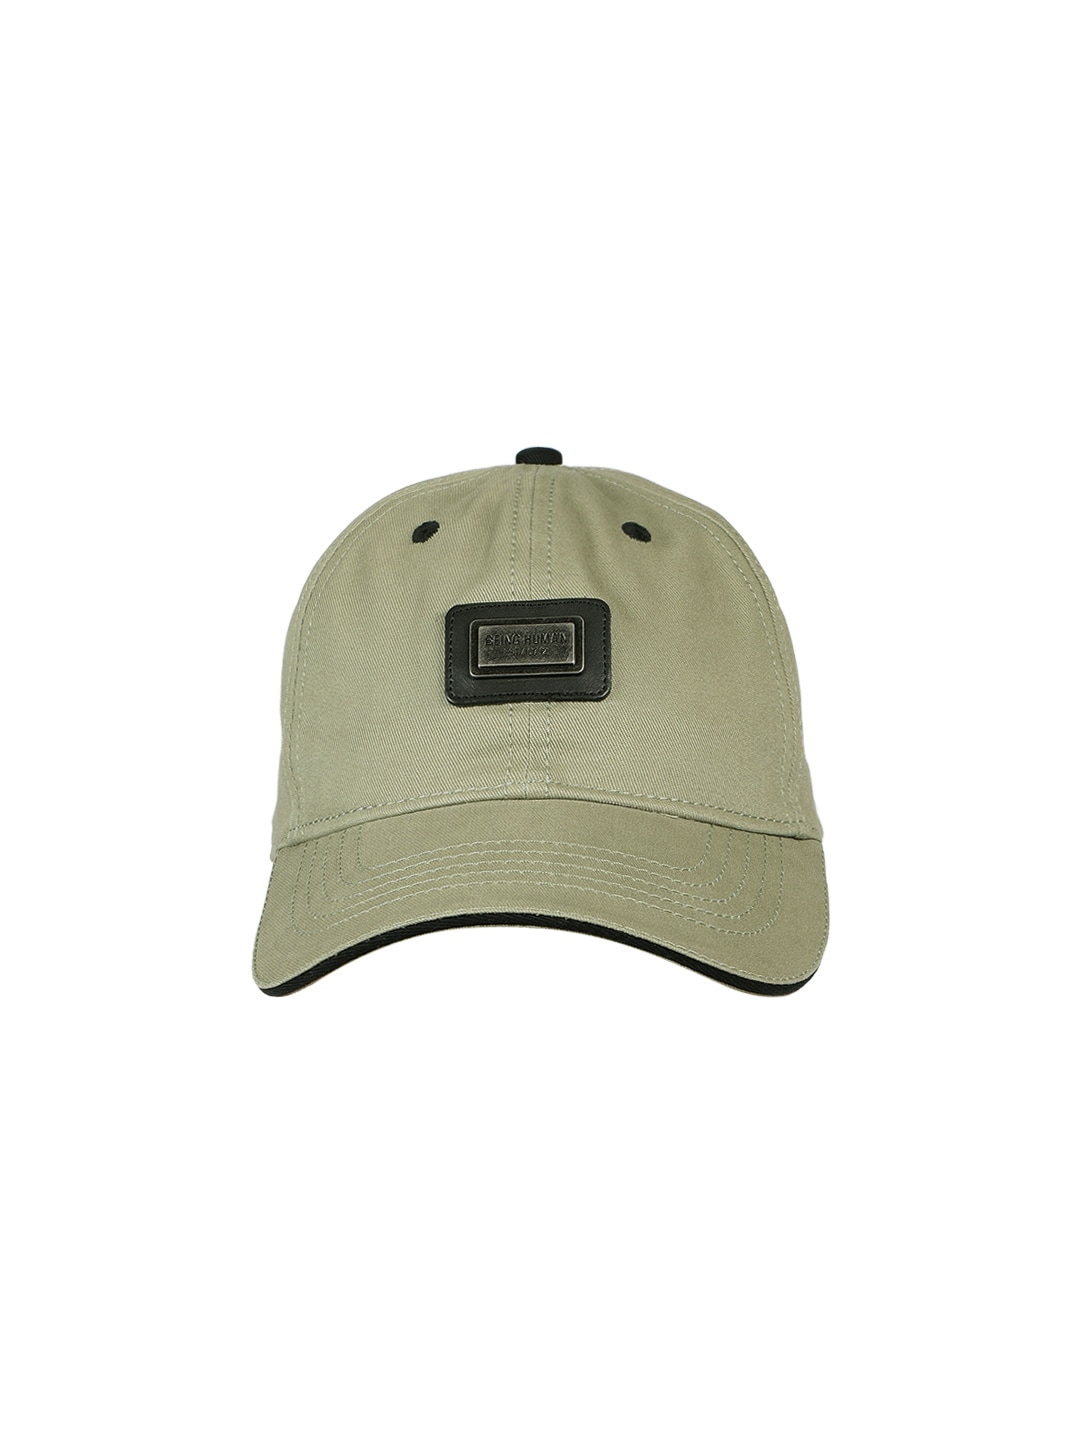 ca34c100608f4 Hats   Caps For Men - Shop Mens Caps   Hats Online at best price ...